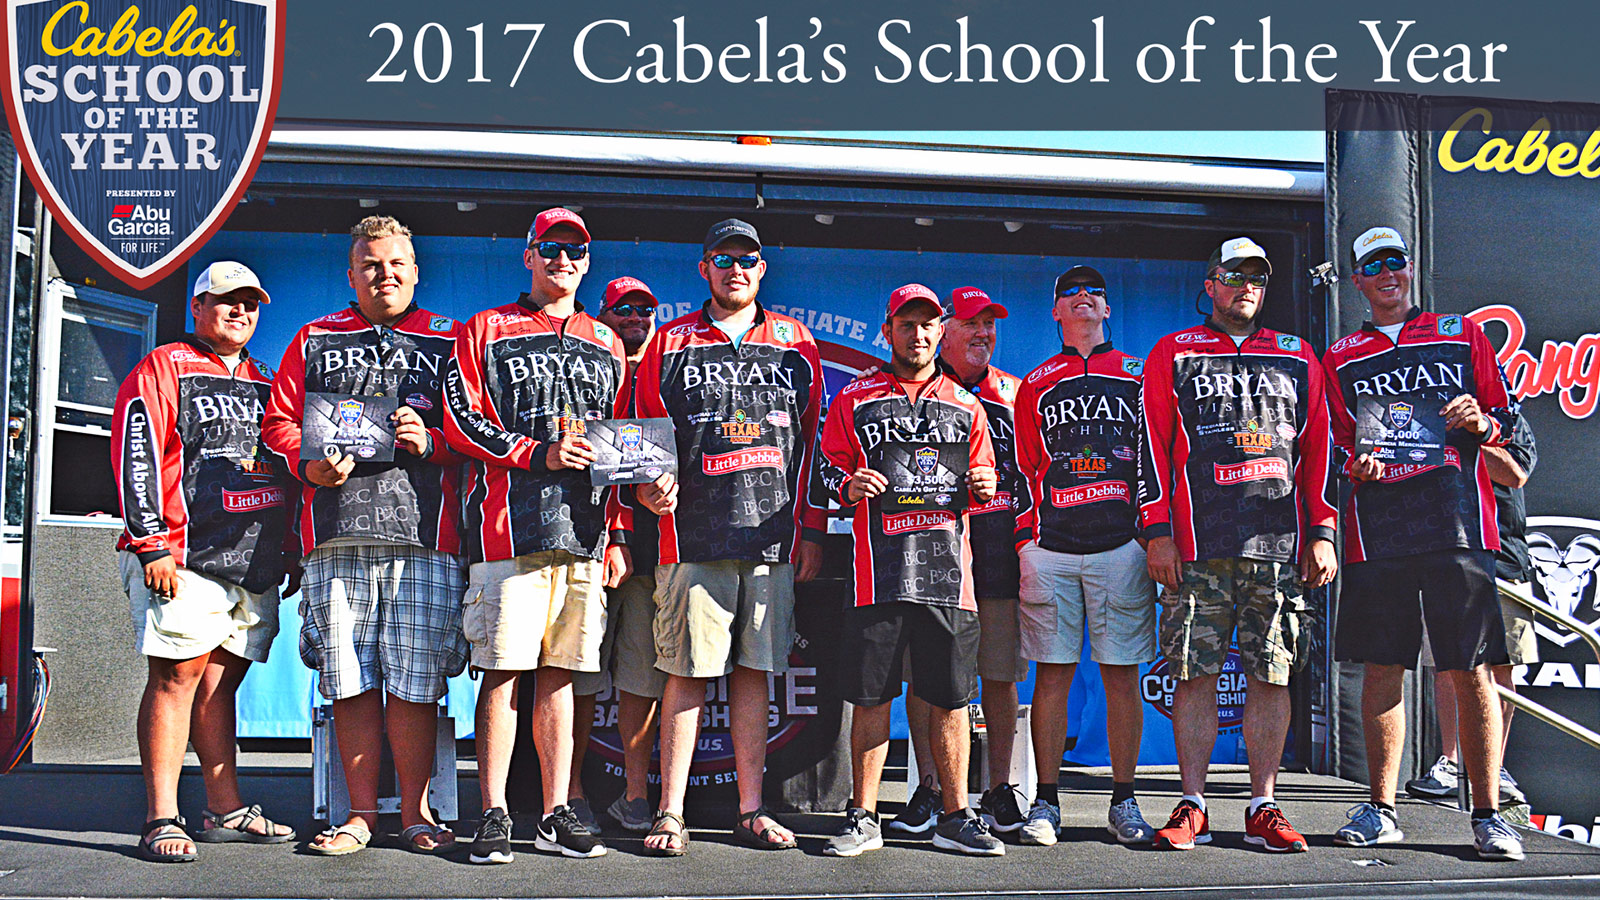 Bryan fishing wins 2017 cabela s school of the year for Cabelas college fishing